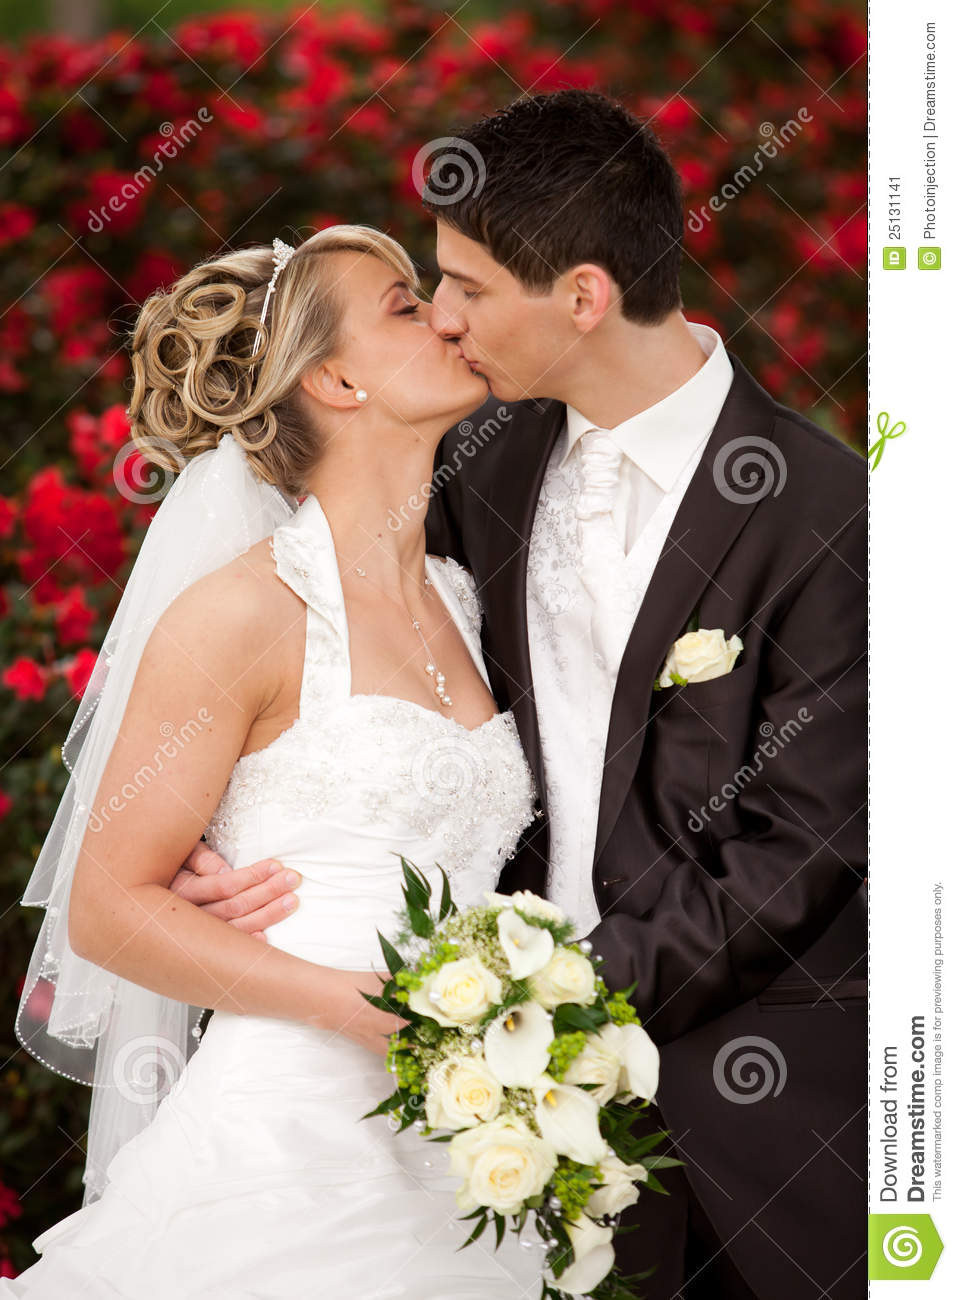 Tender wedding kiss red roses stock image image 25131141 royalty free stock photo download tender wedding kiss junglespirit Image collections